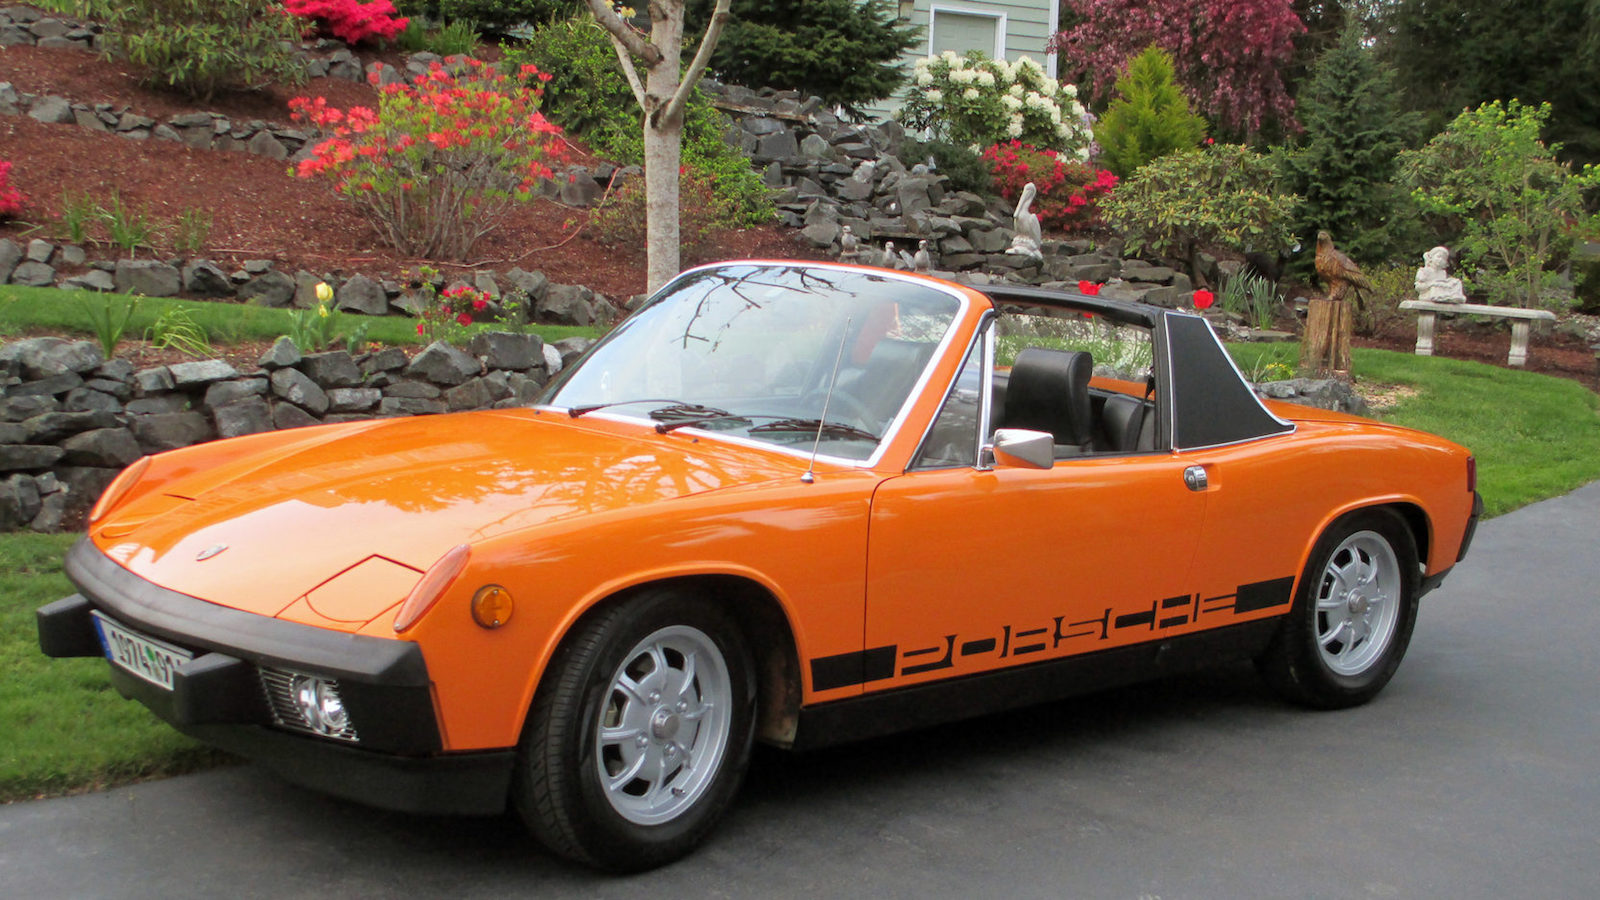 Interesting Collector Cars For Less Than $50k USD - Porsche 914 2.0